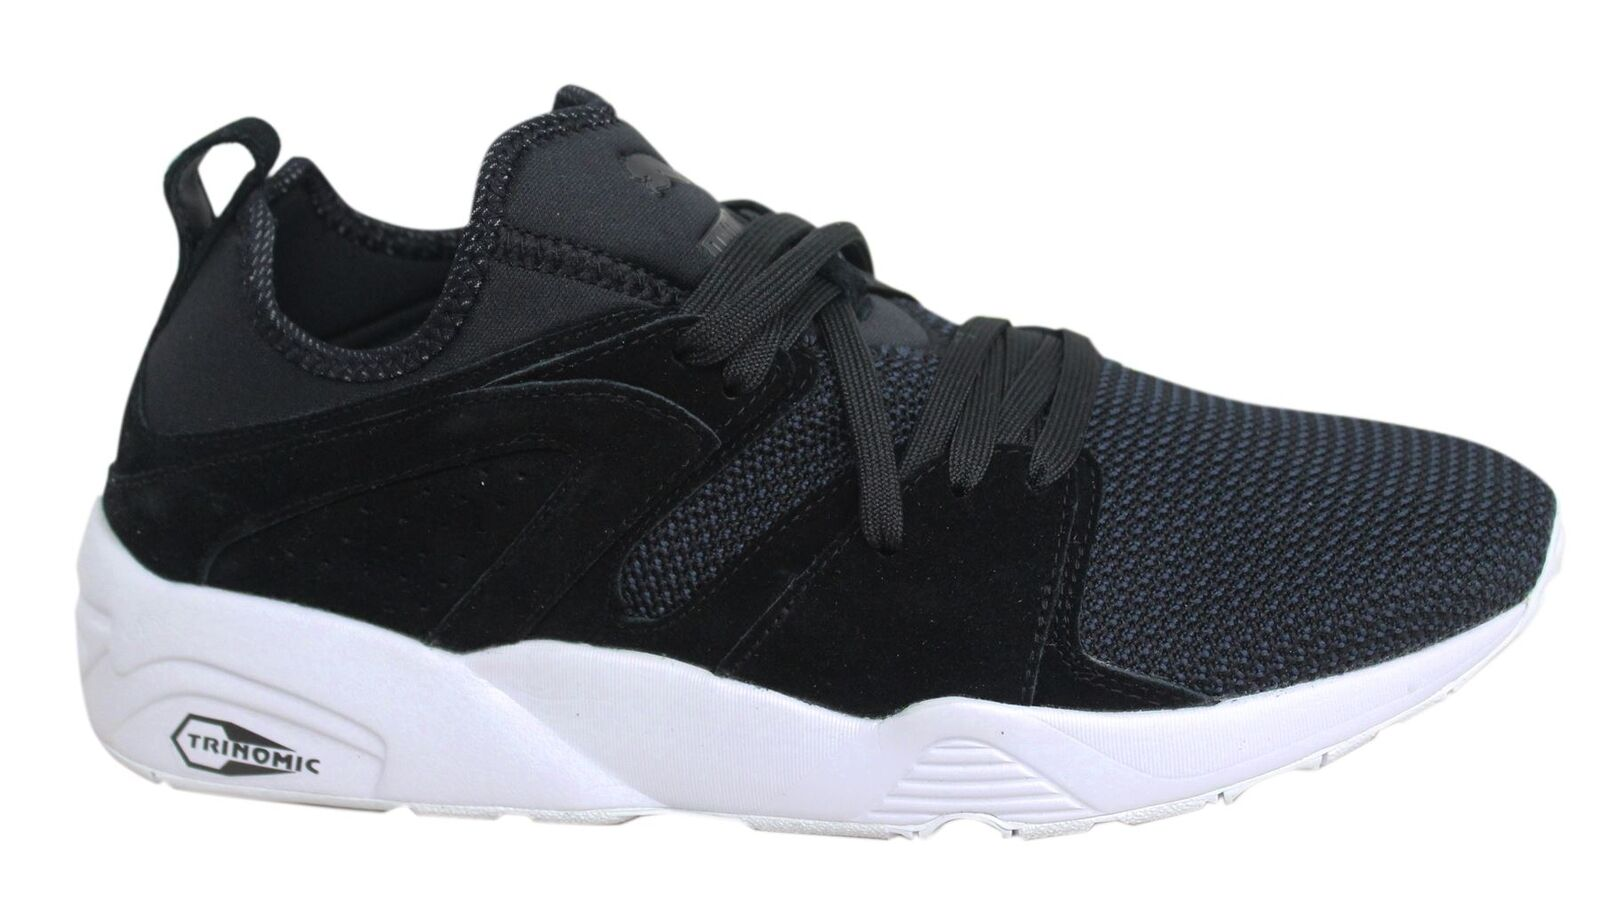 Puma Blaze of Glory Soft Tech Lace Up Noir Textile Hommes Trainers 364128 01 U14